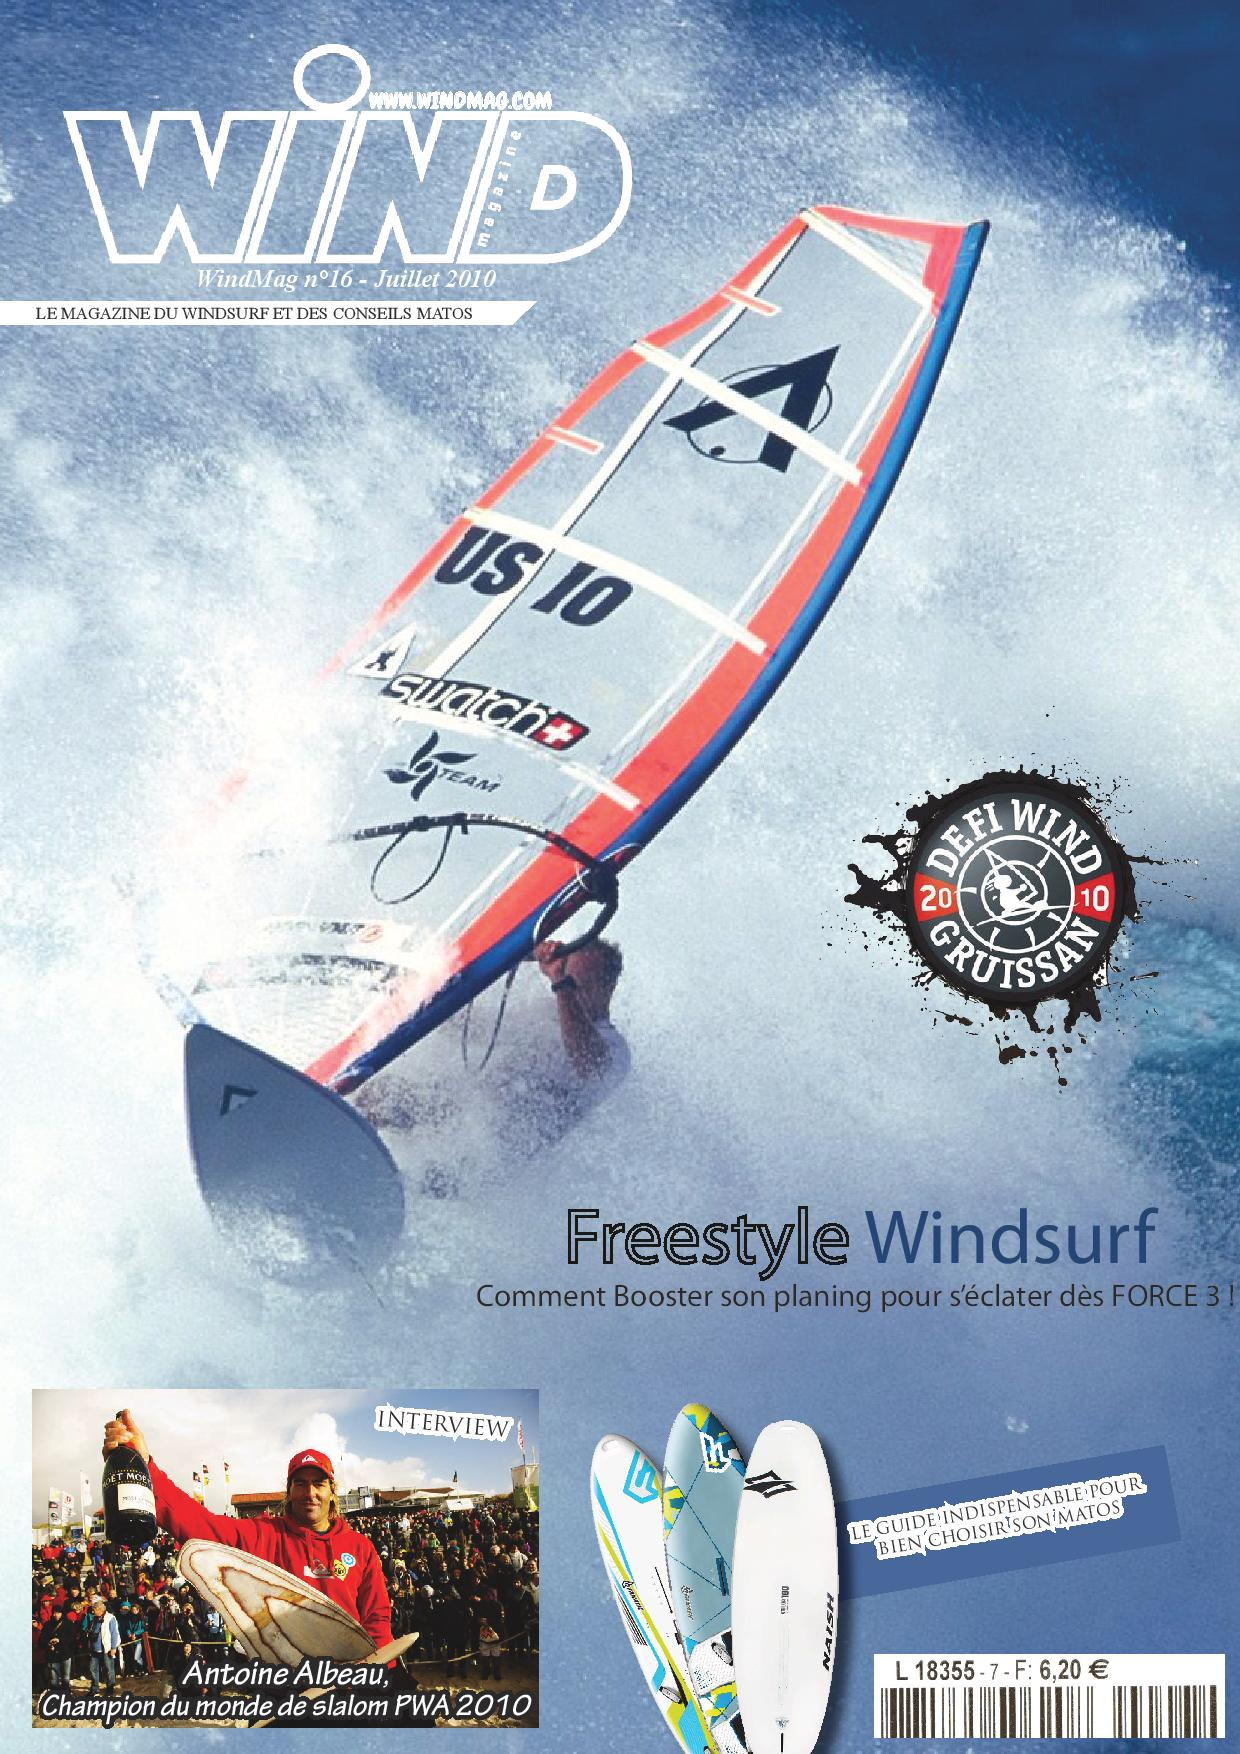 Couverture de magazine de Windsurf